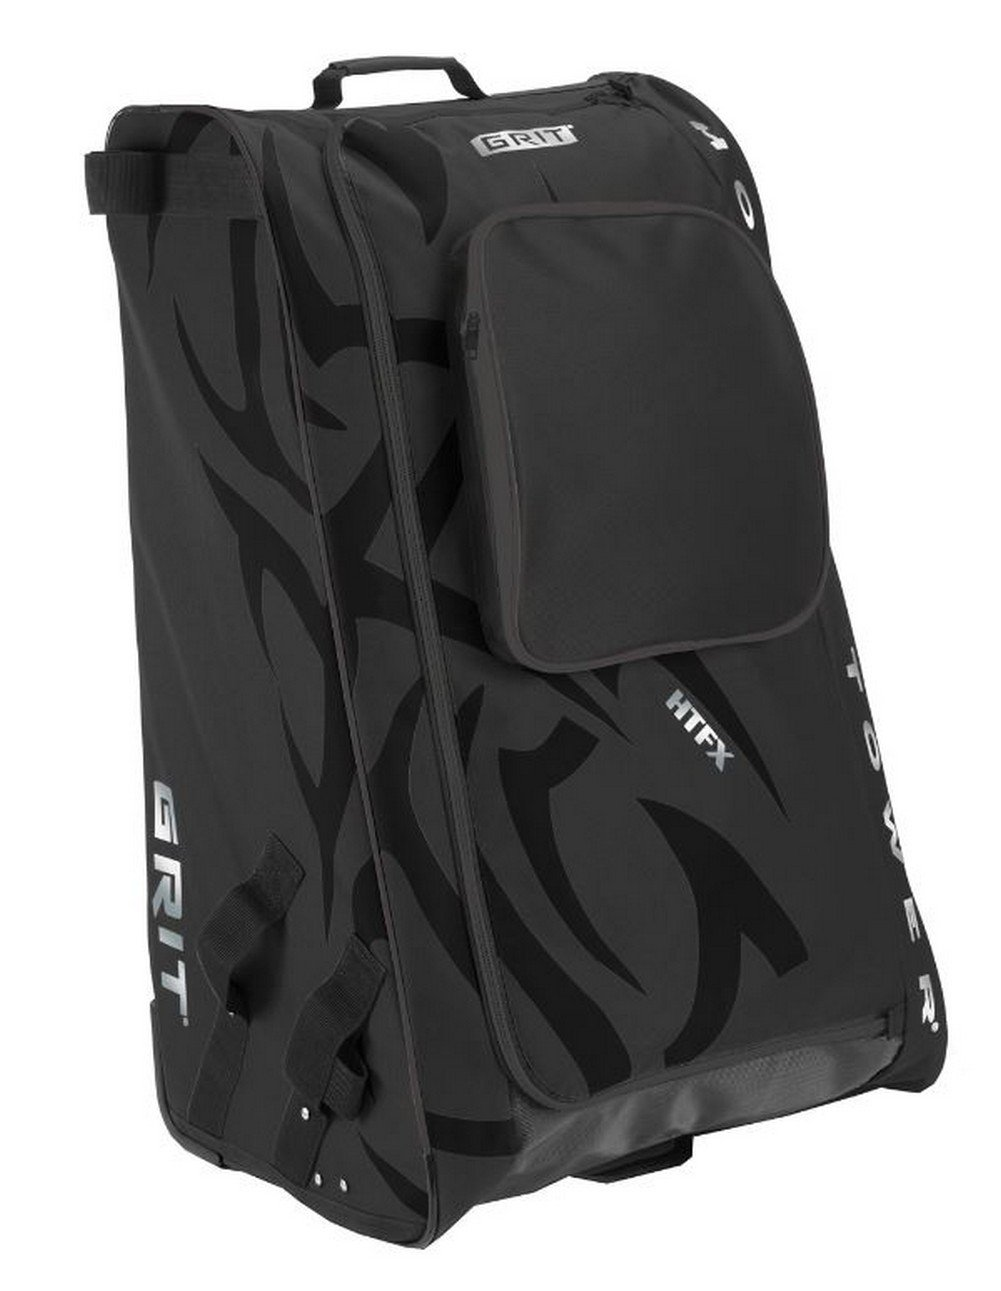 Grit Inc HTFX Hockey Tower 36'' Wheeled Equipment Bag Black HTFX036-B (Black)